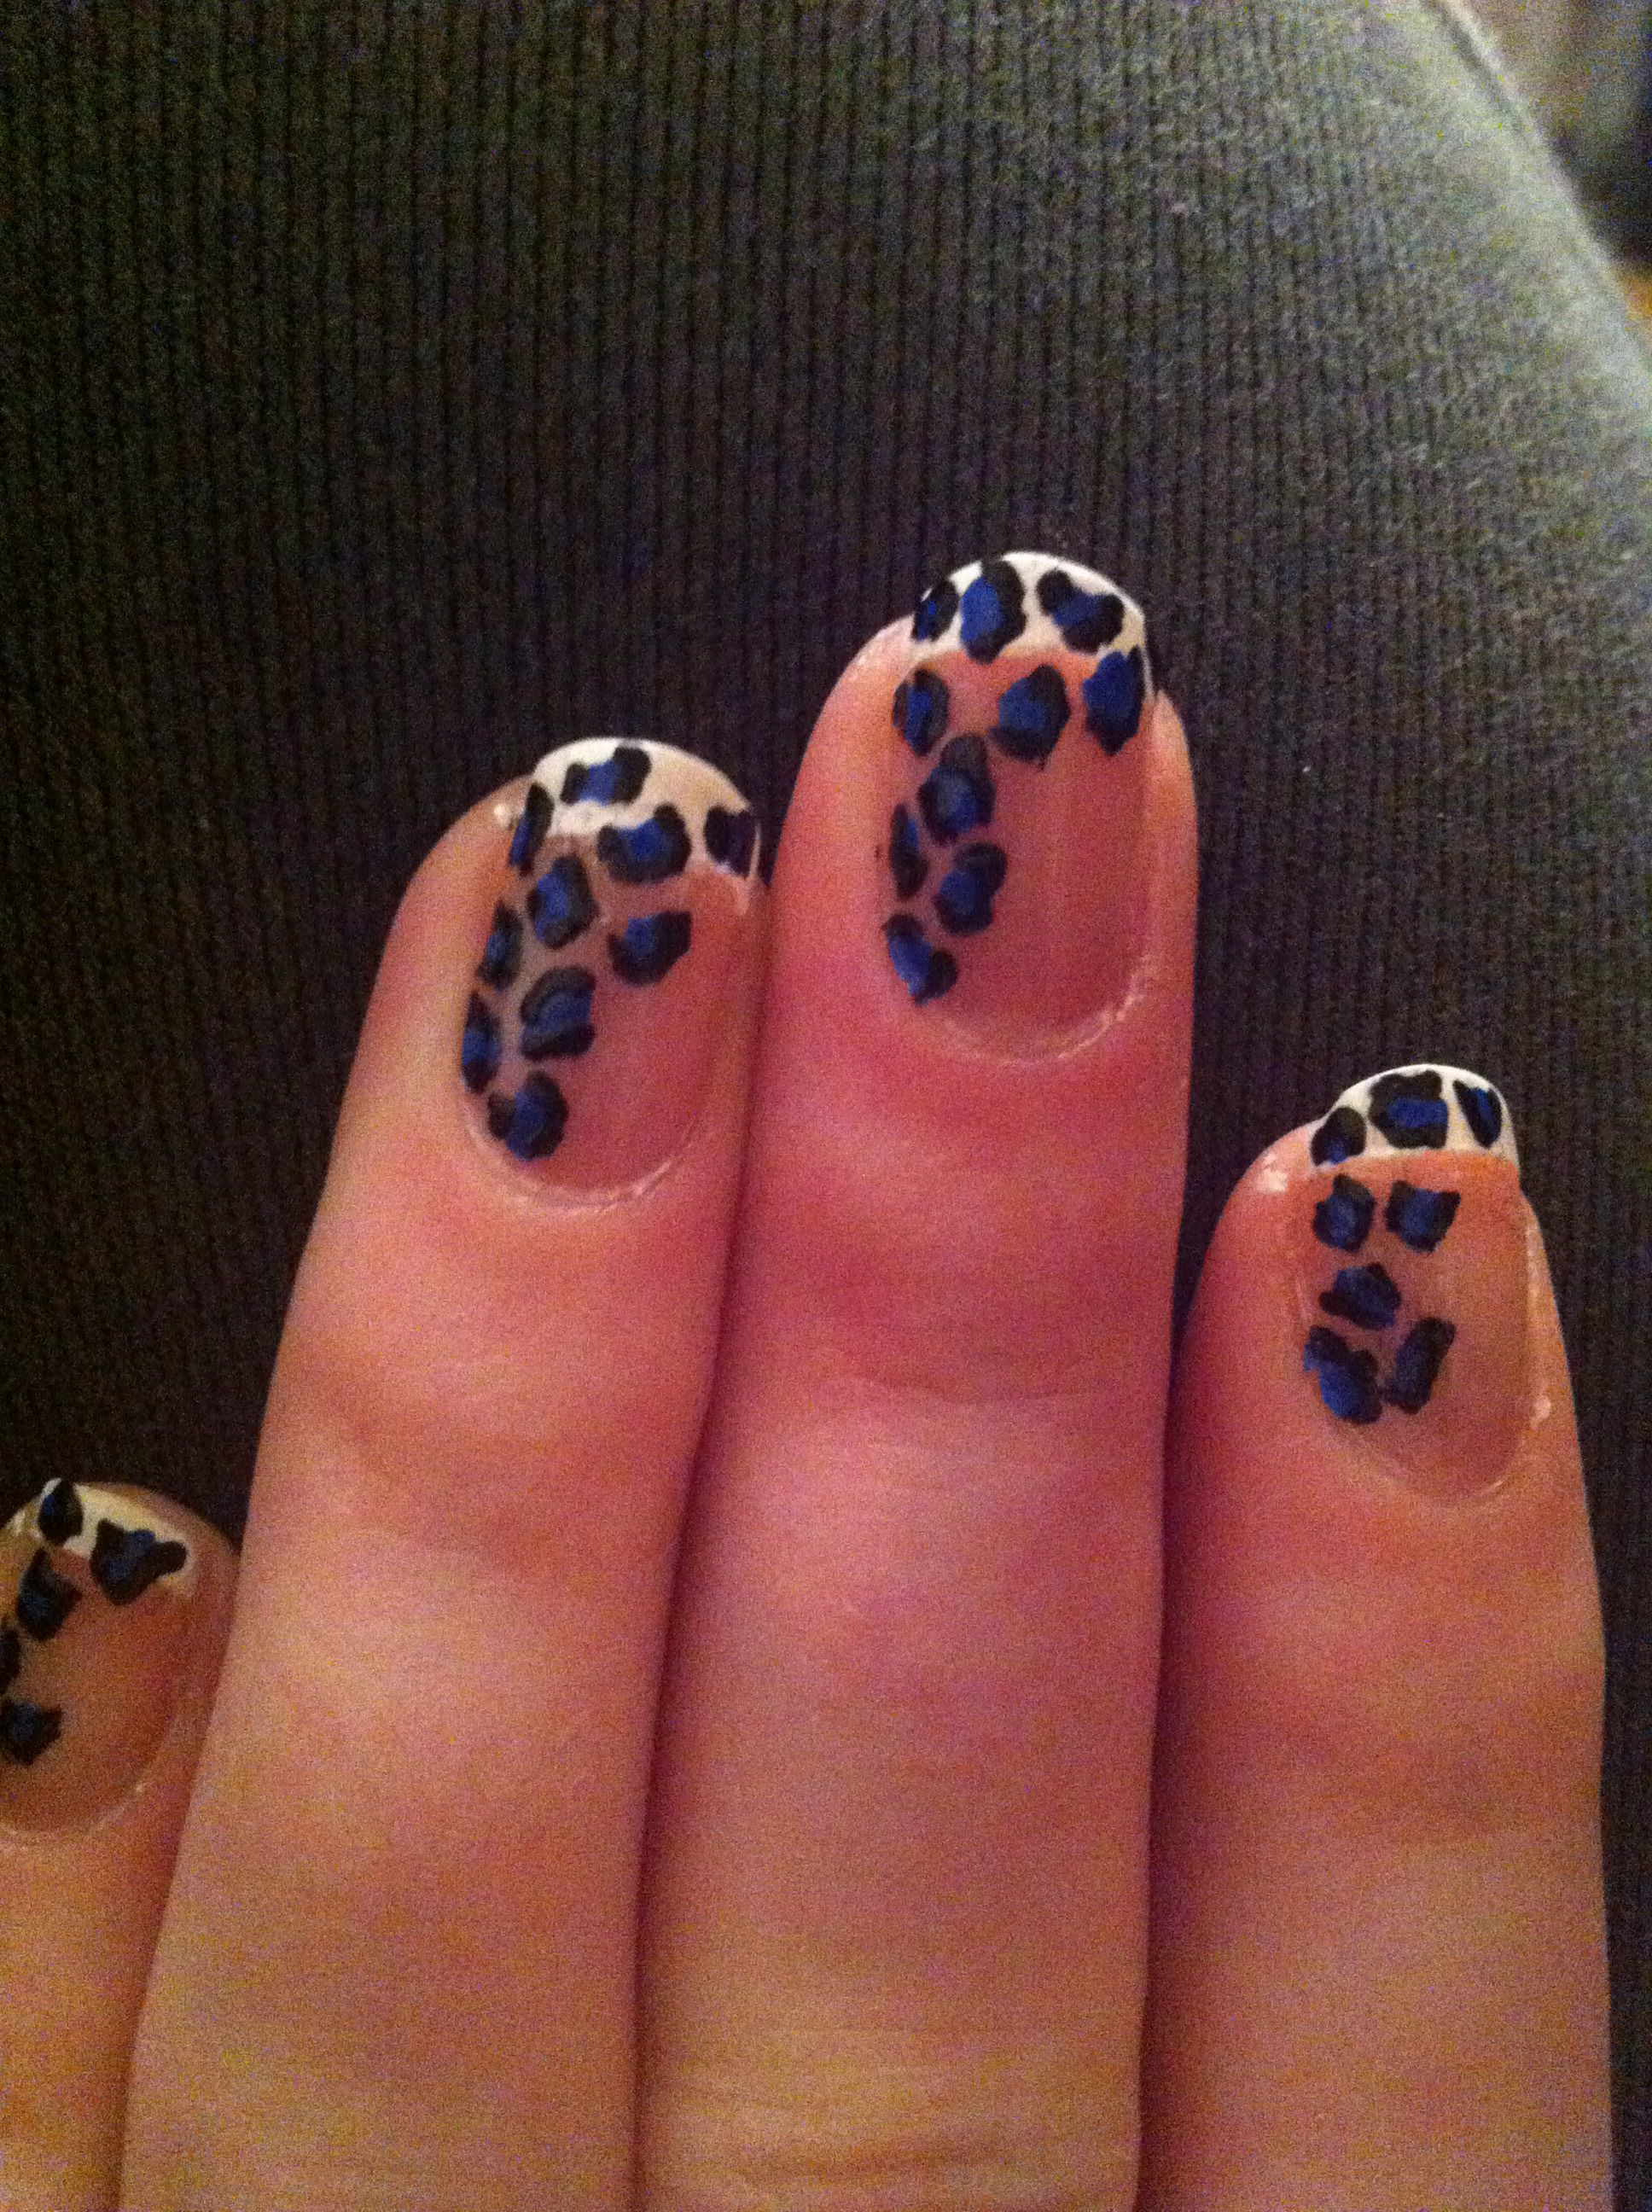 French Manicured Nails With Blue And Black Leopard Print Design